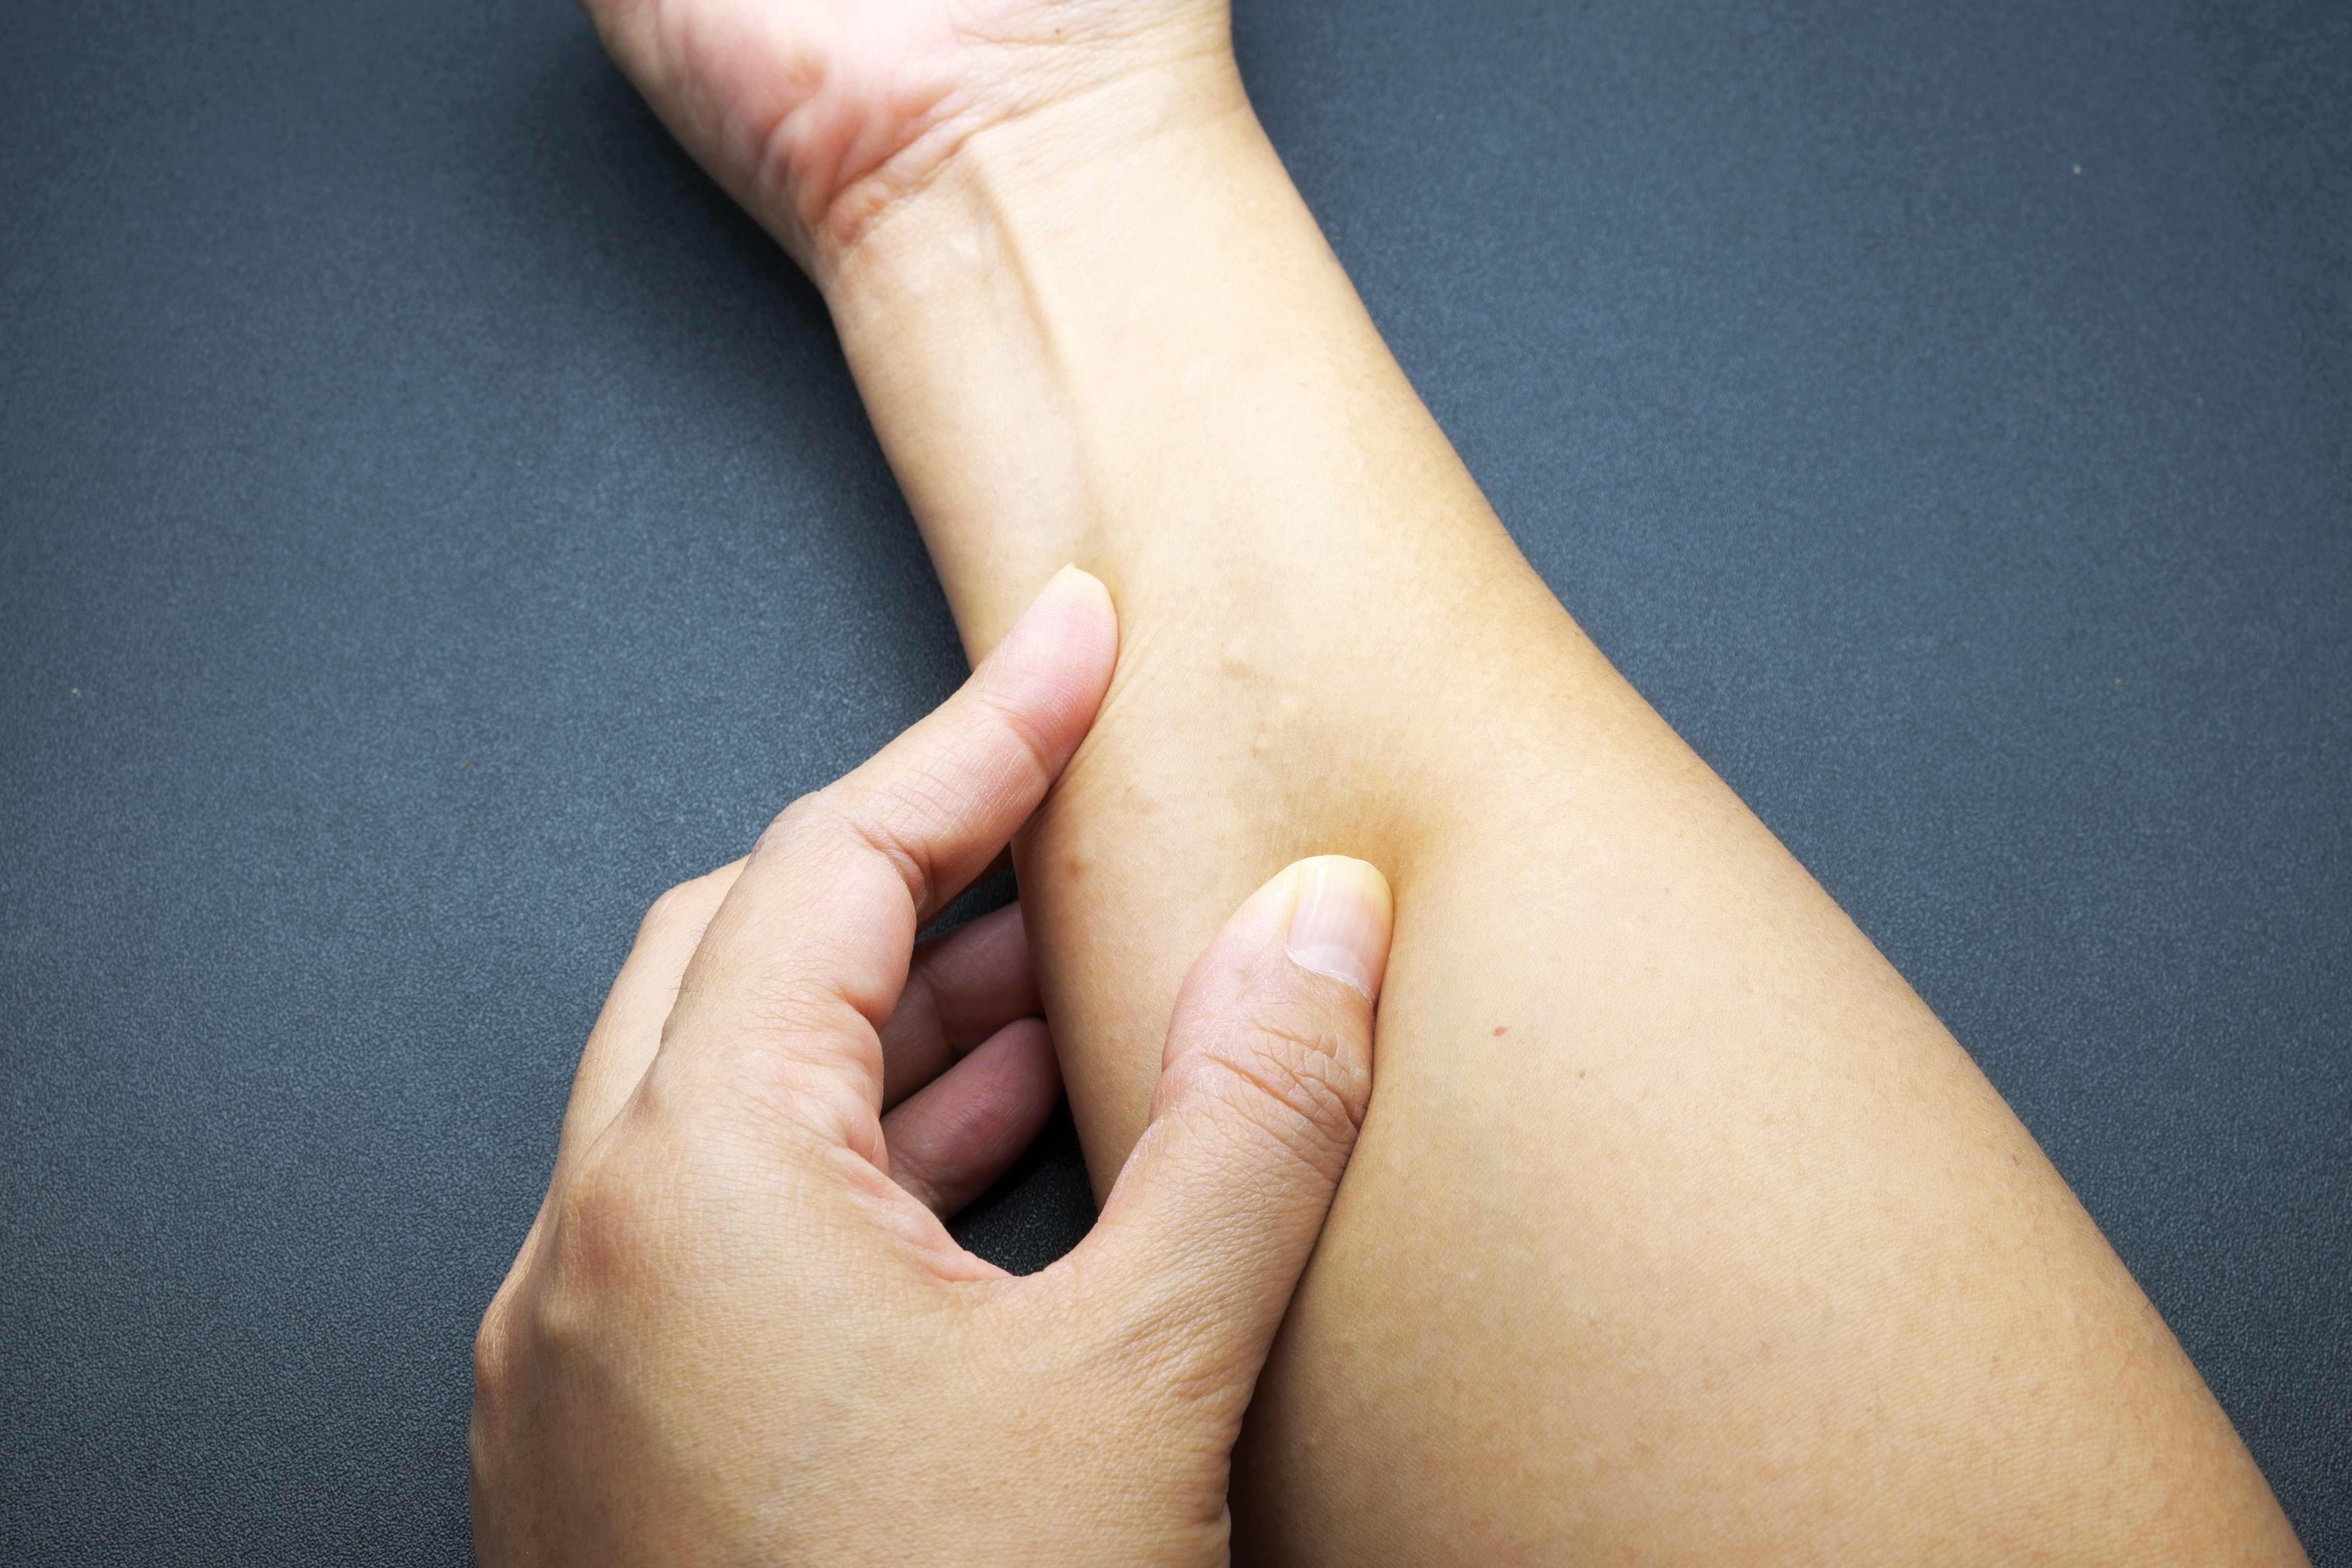 An image depicting a person suffering from skin-colored forearm bump symptoms